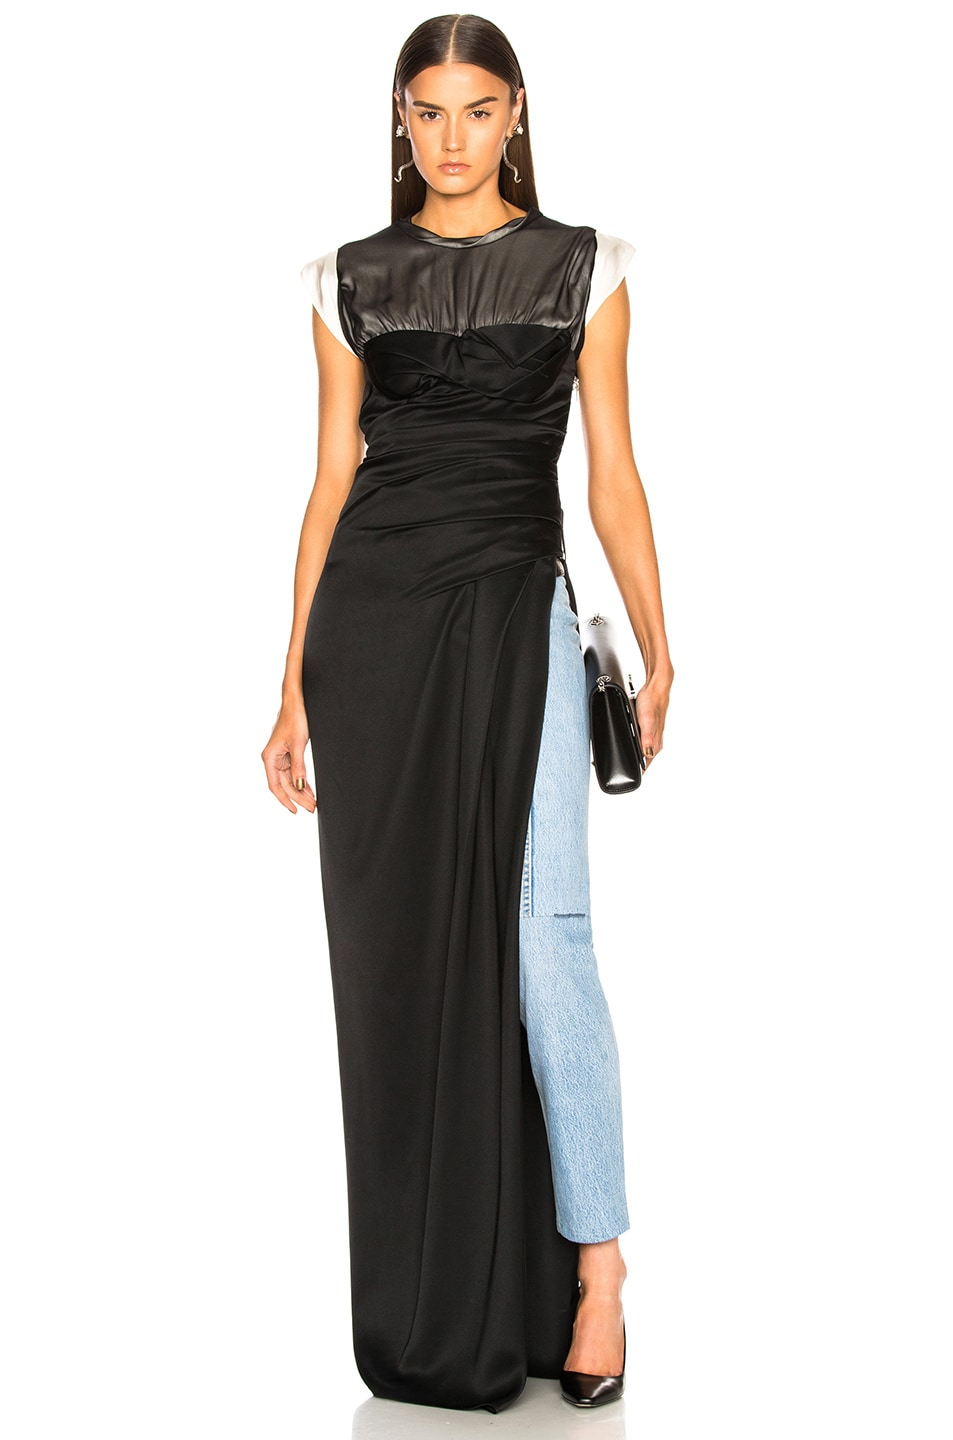 Alexander Wang Twisted Cup Evening Dress in Black,Gray